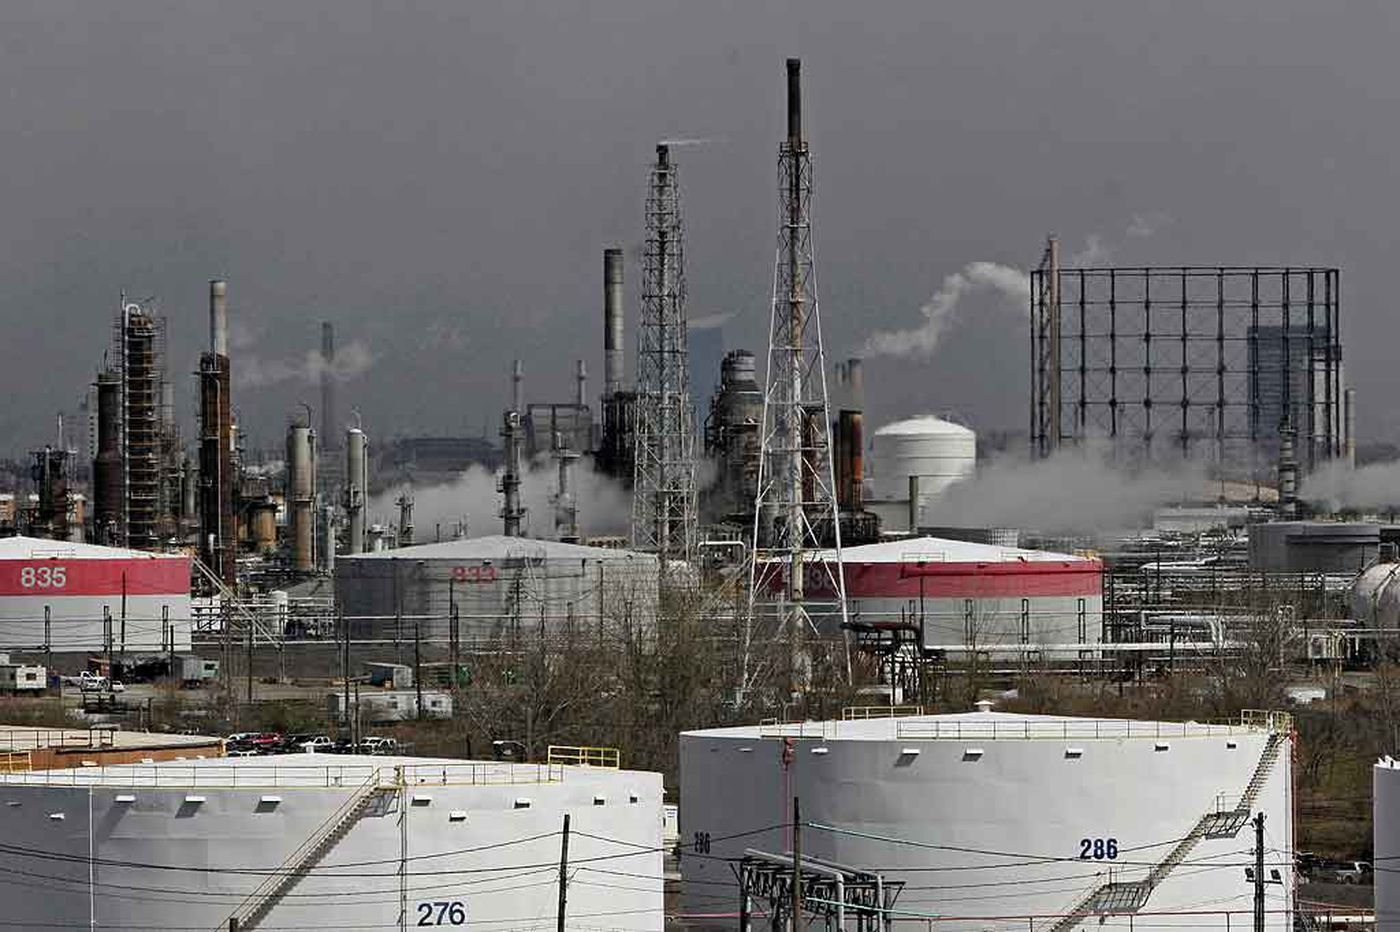 Philly refinery auction said to attract Chicago developer that rehabs industrial properties